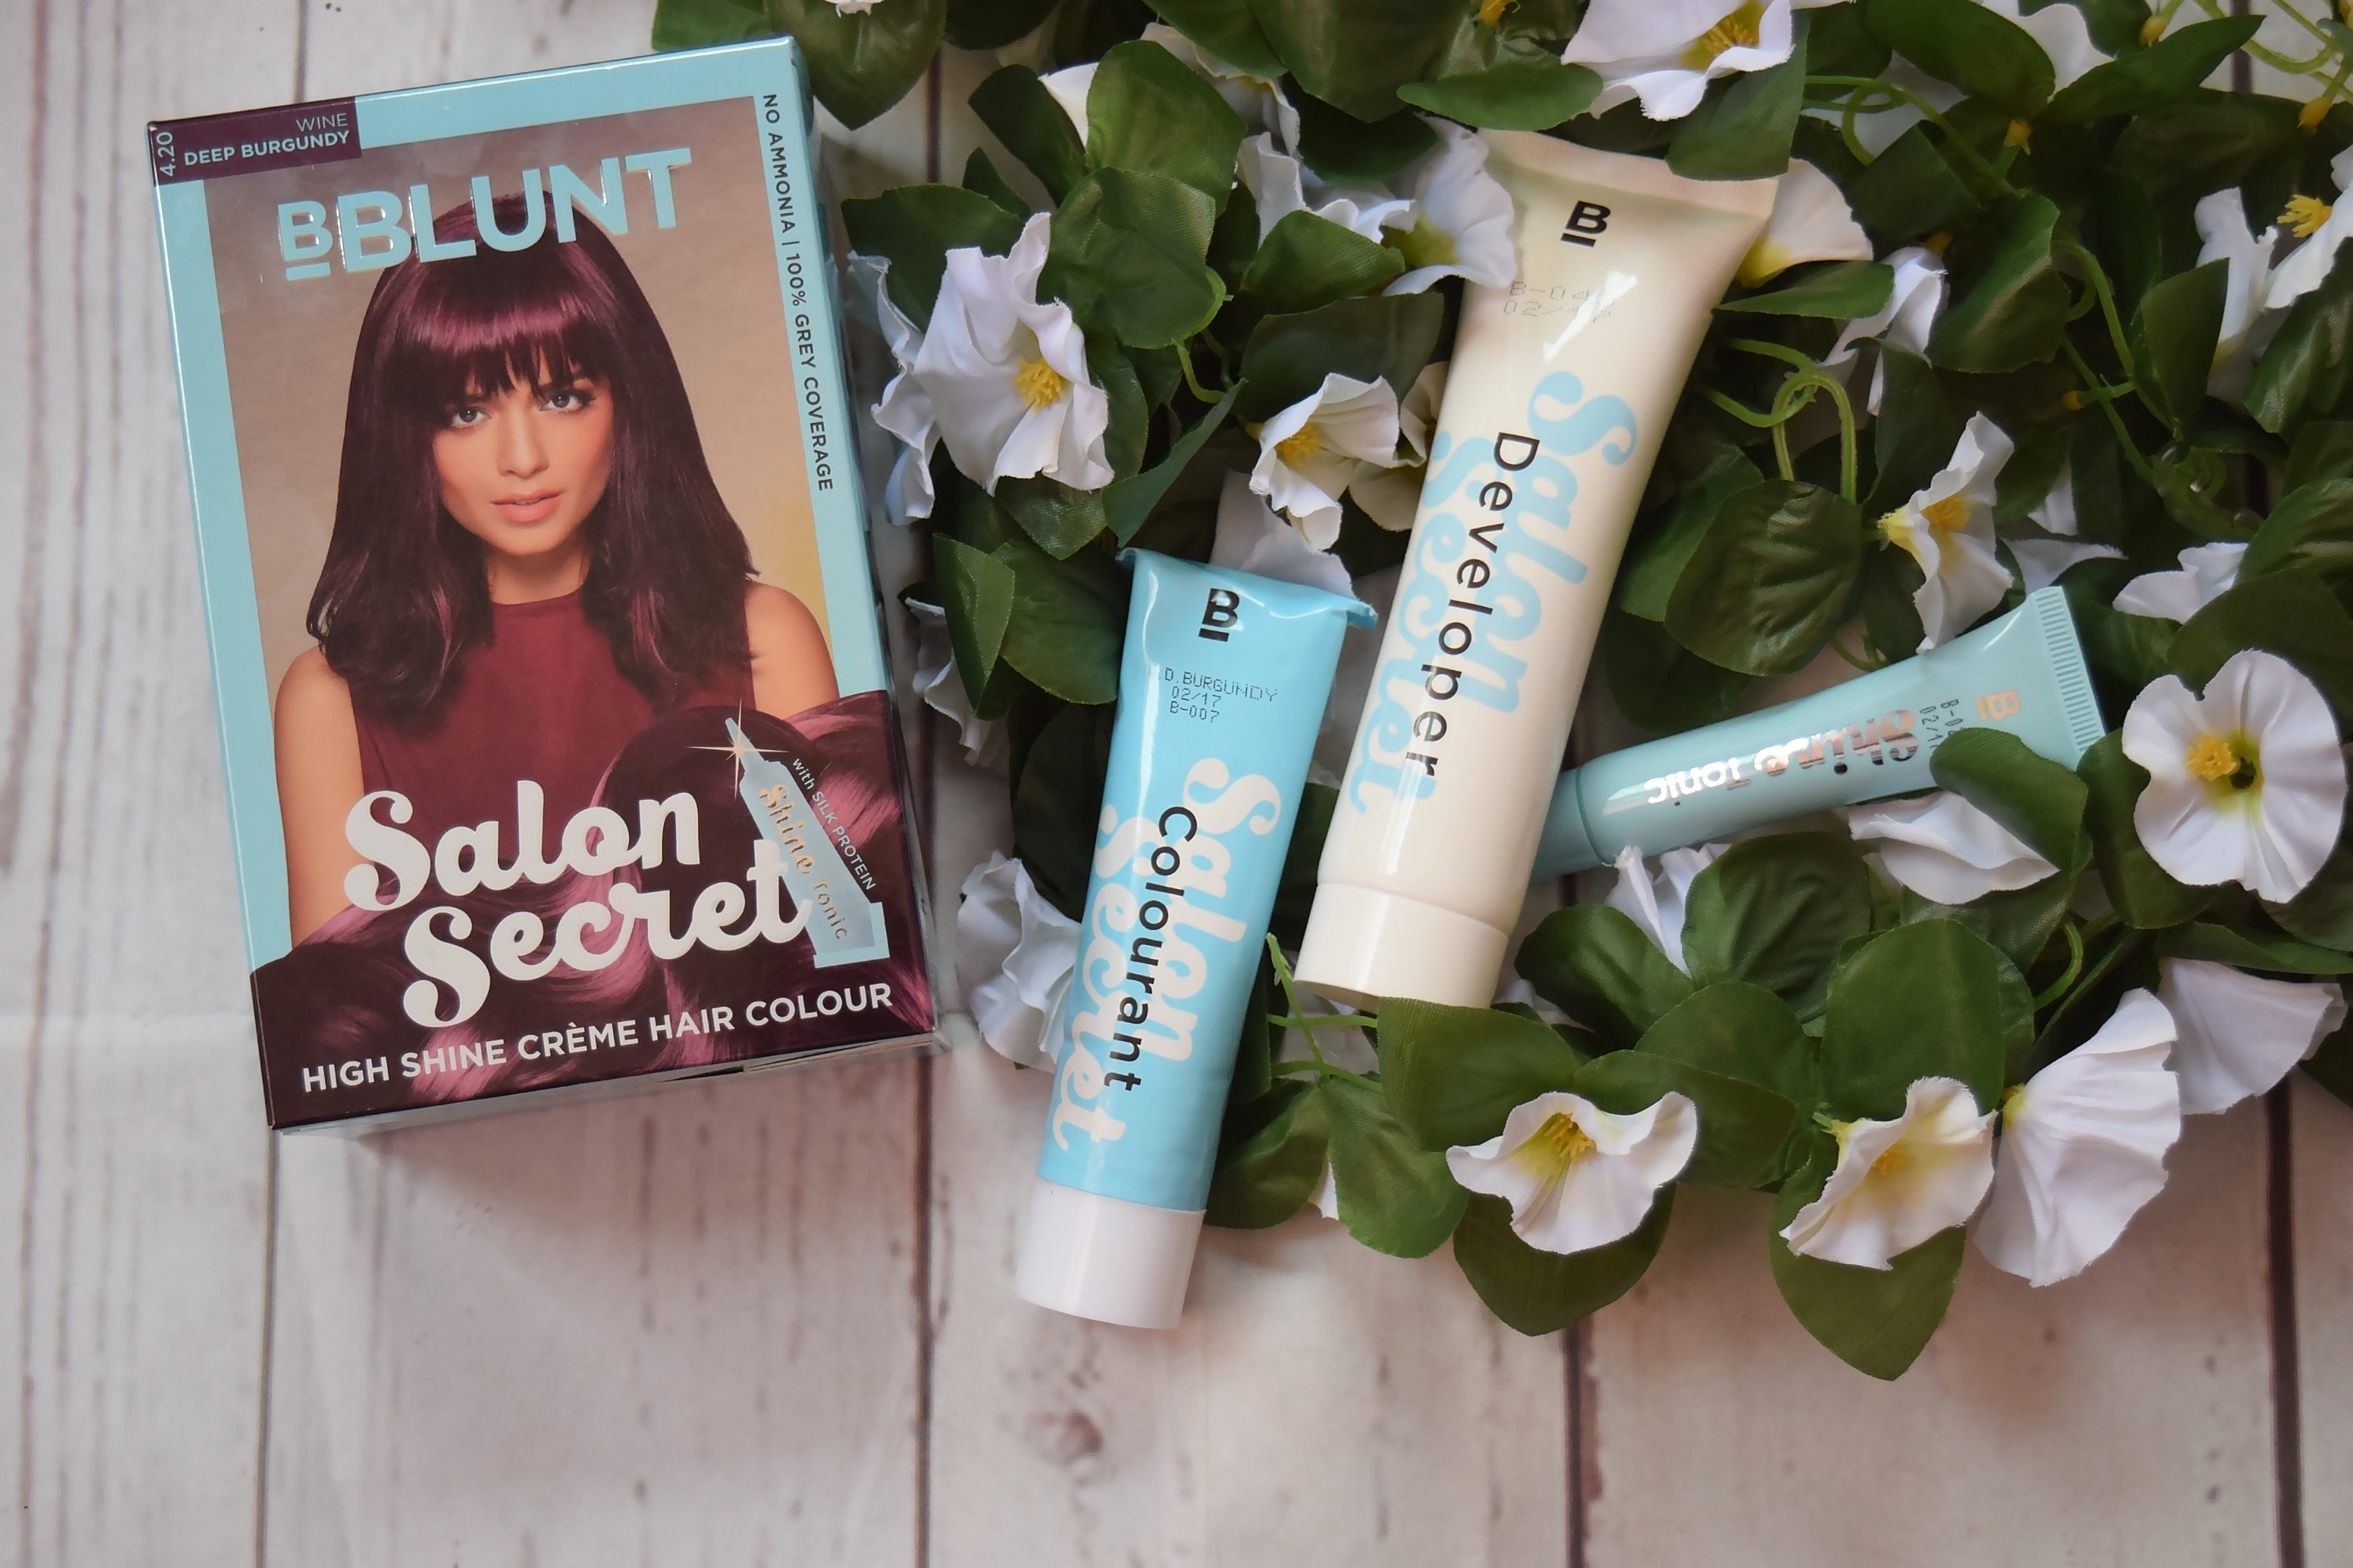 bblunt-salon-secret-high-shine-creme-hair-colour-product-review-and-method-to-apply